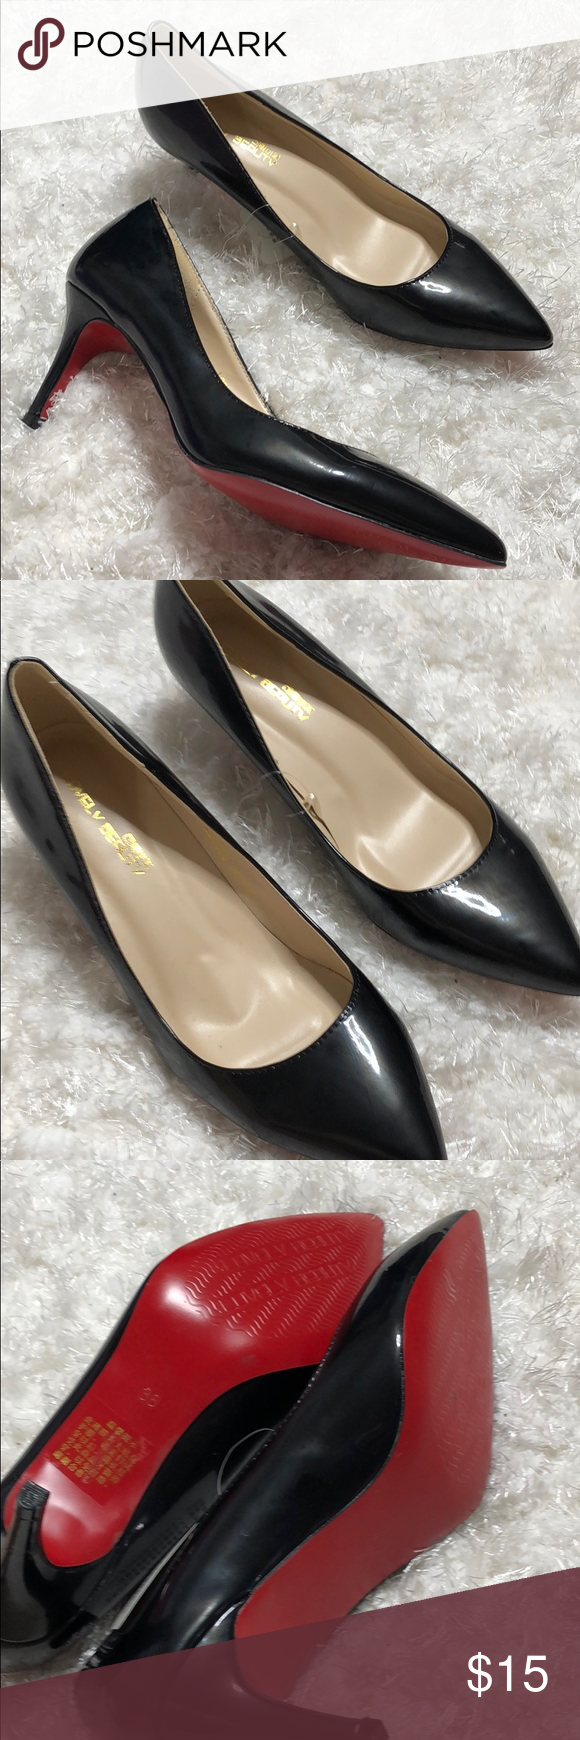 9b11672826c Black and red pointed toe pumps heels 38 nwt New with tags Matte ...